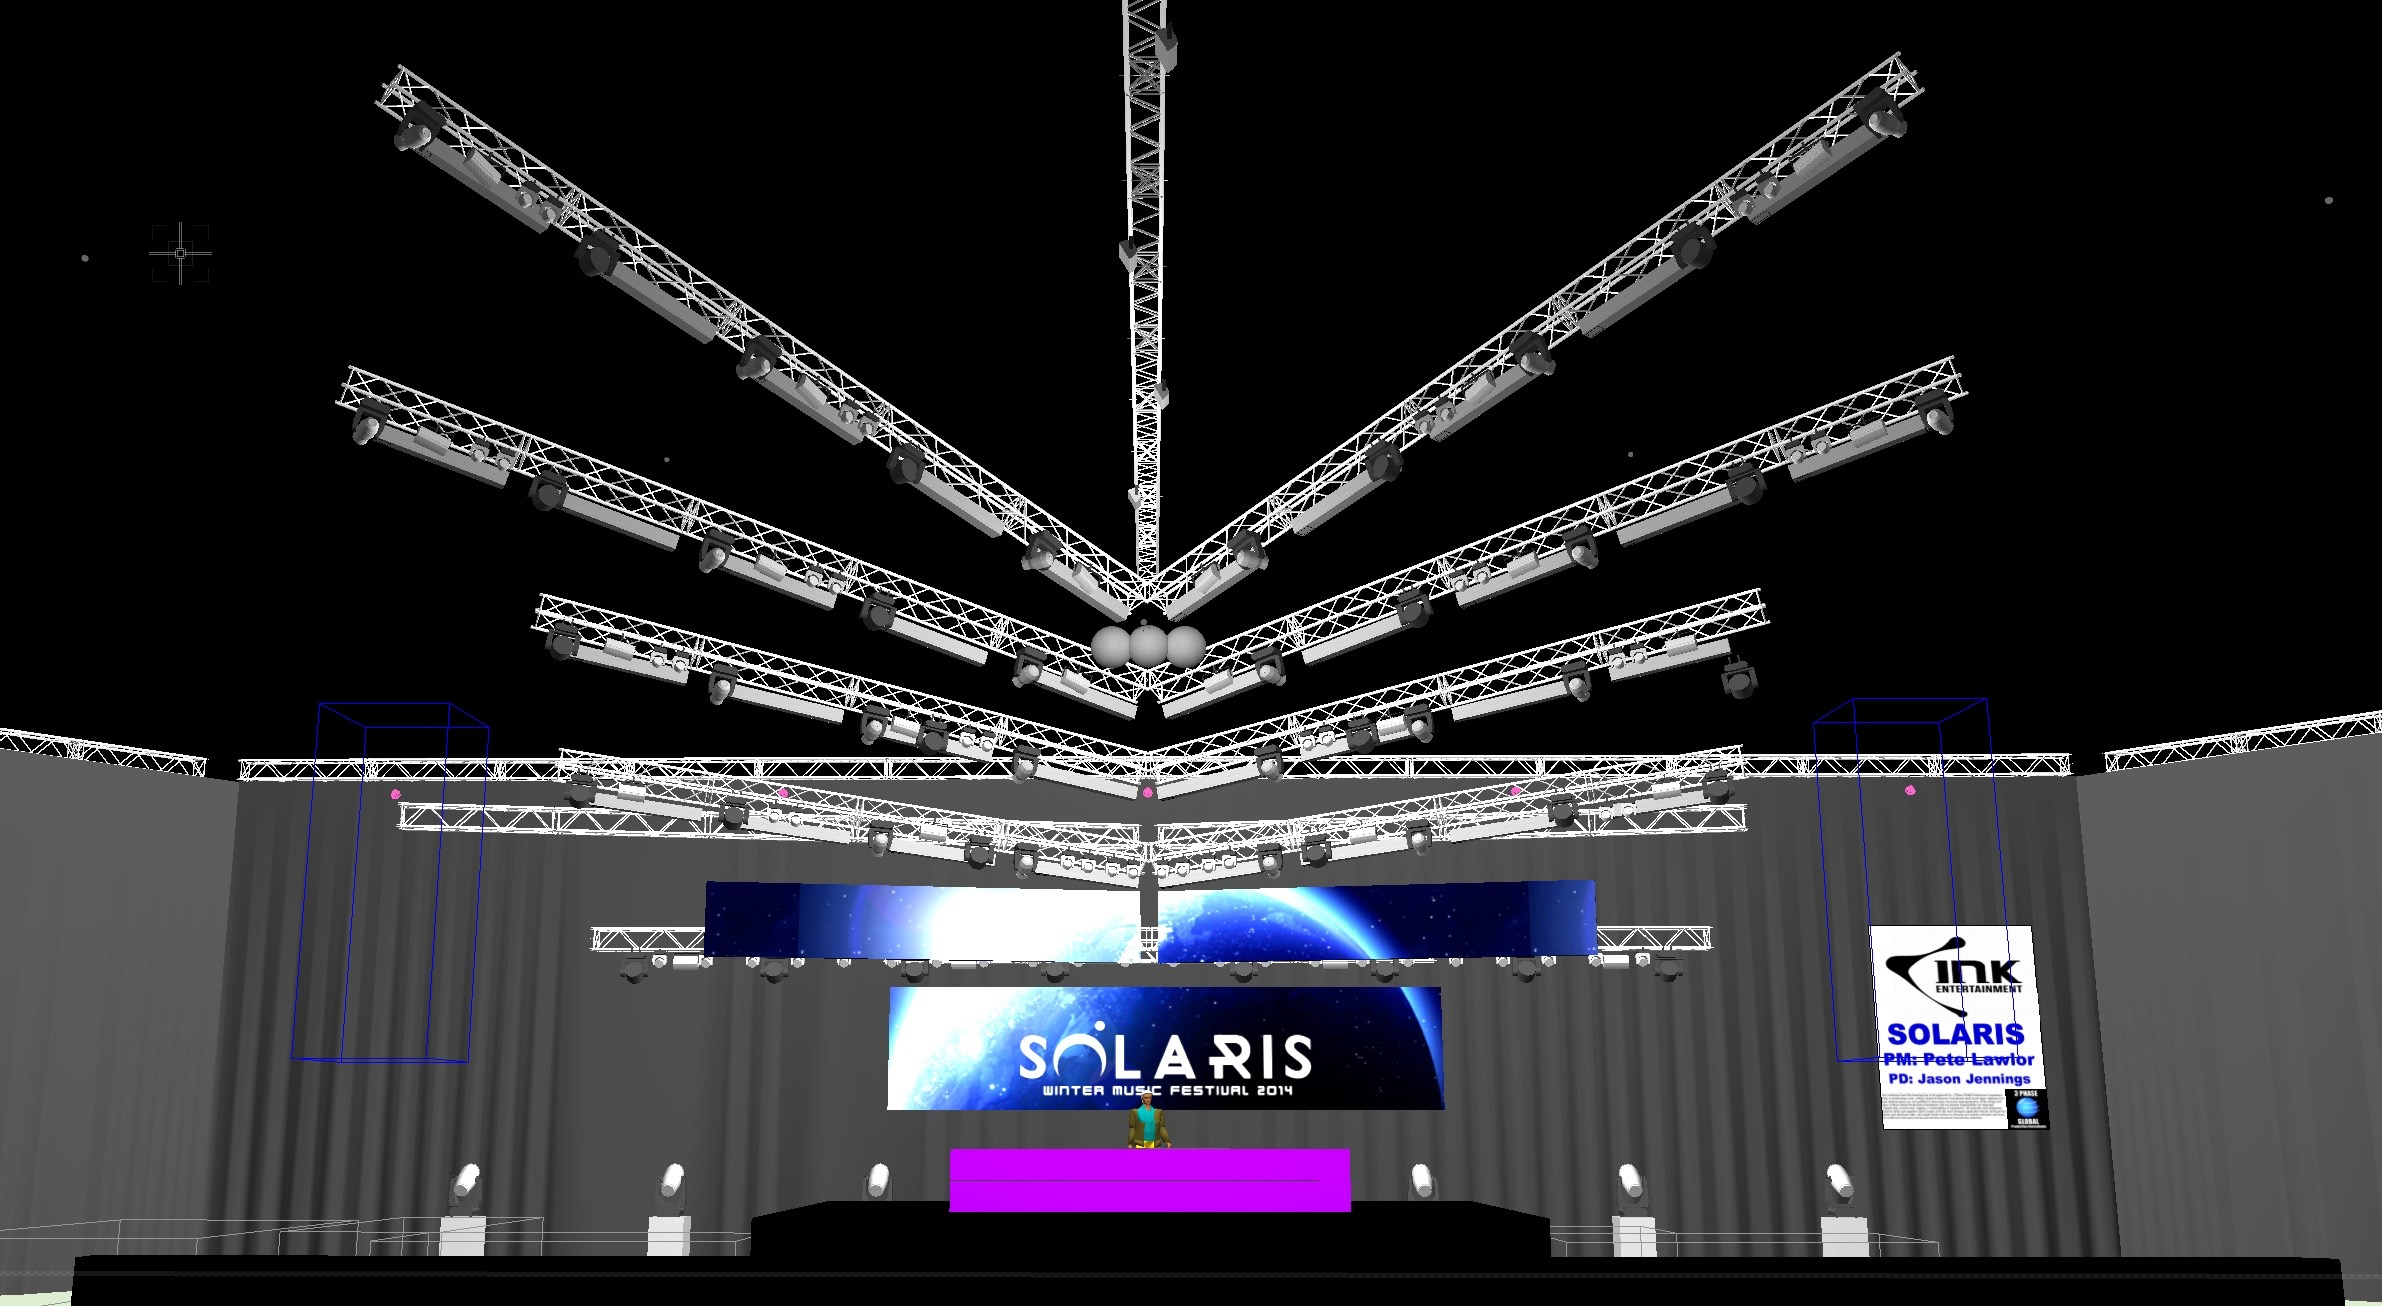 3 phase global event lighting